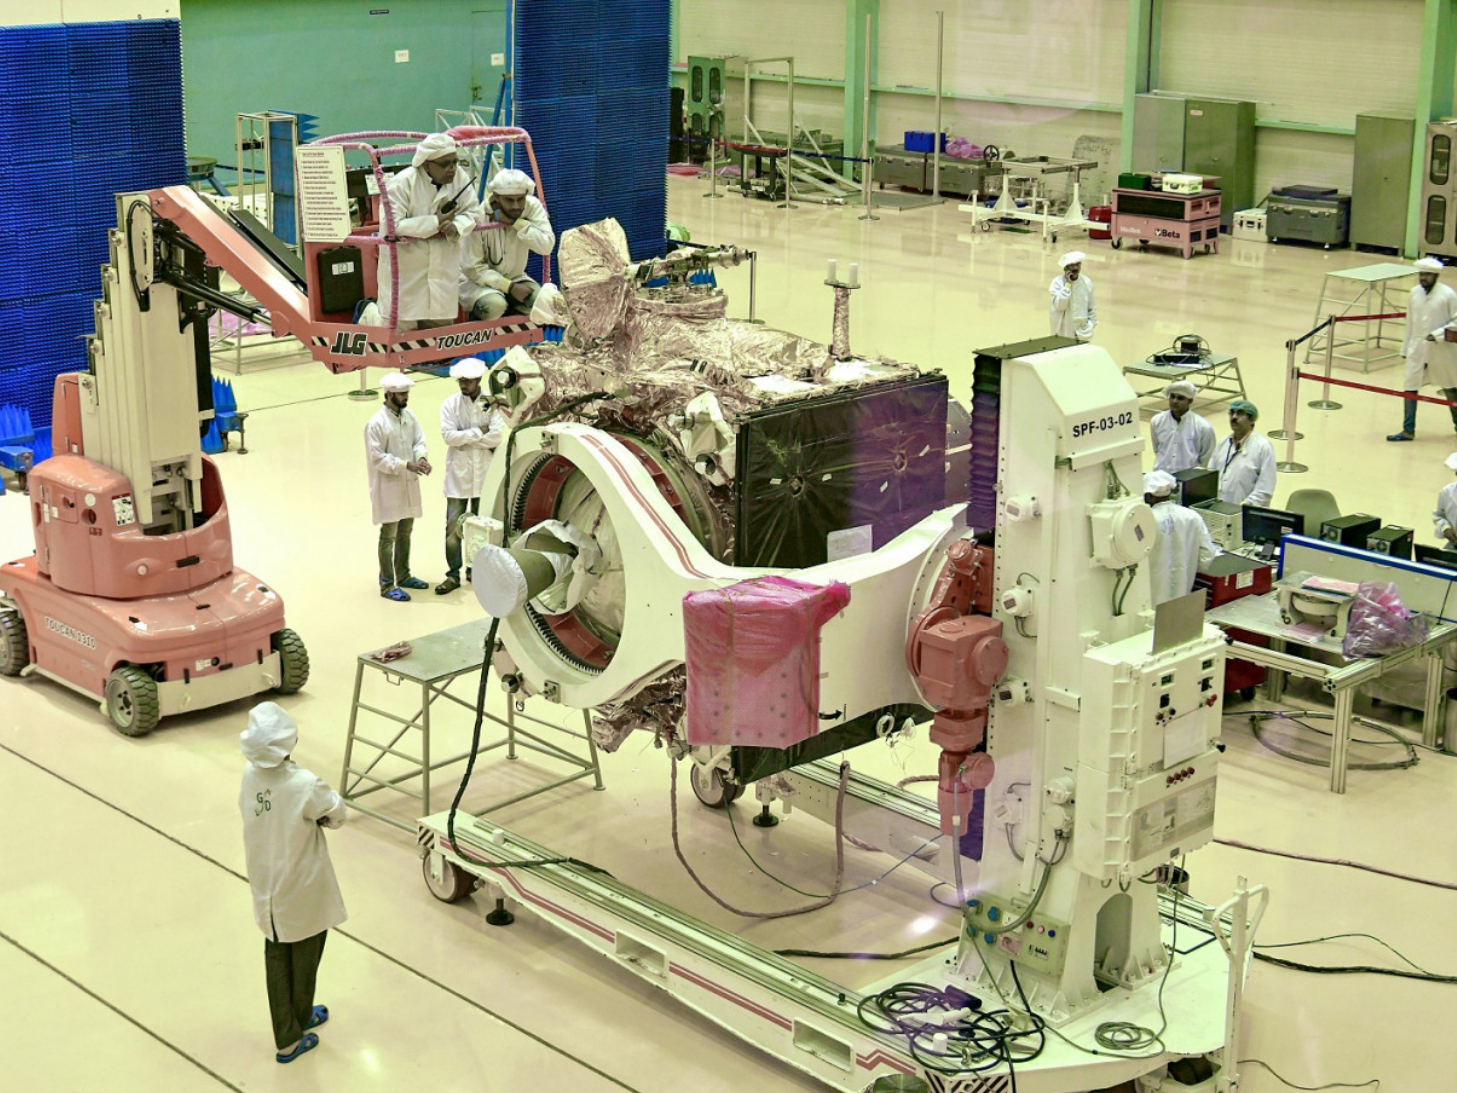 India's second Moon mission to be launched on July 22